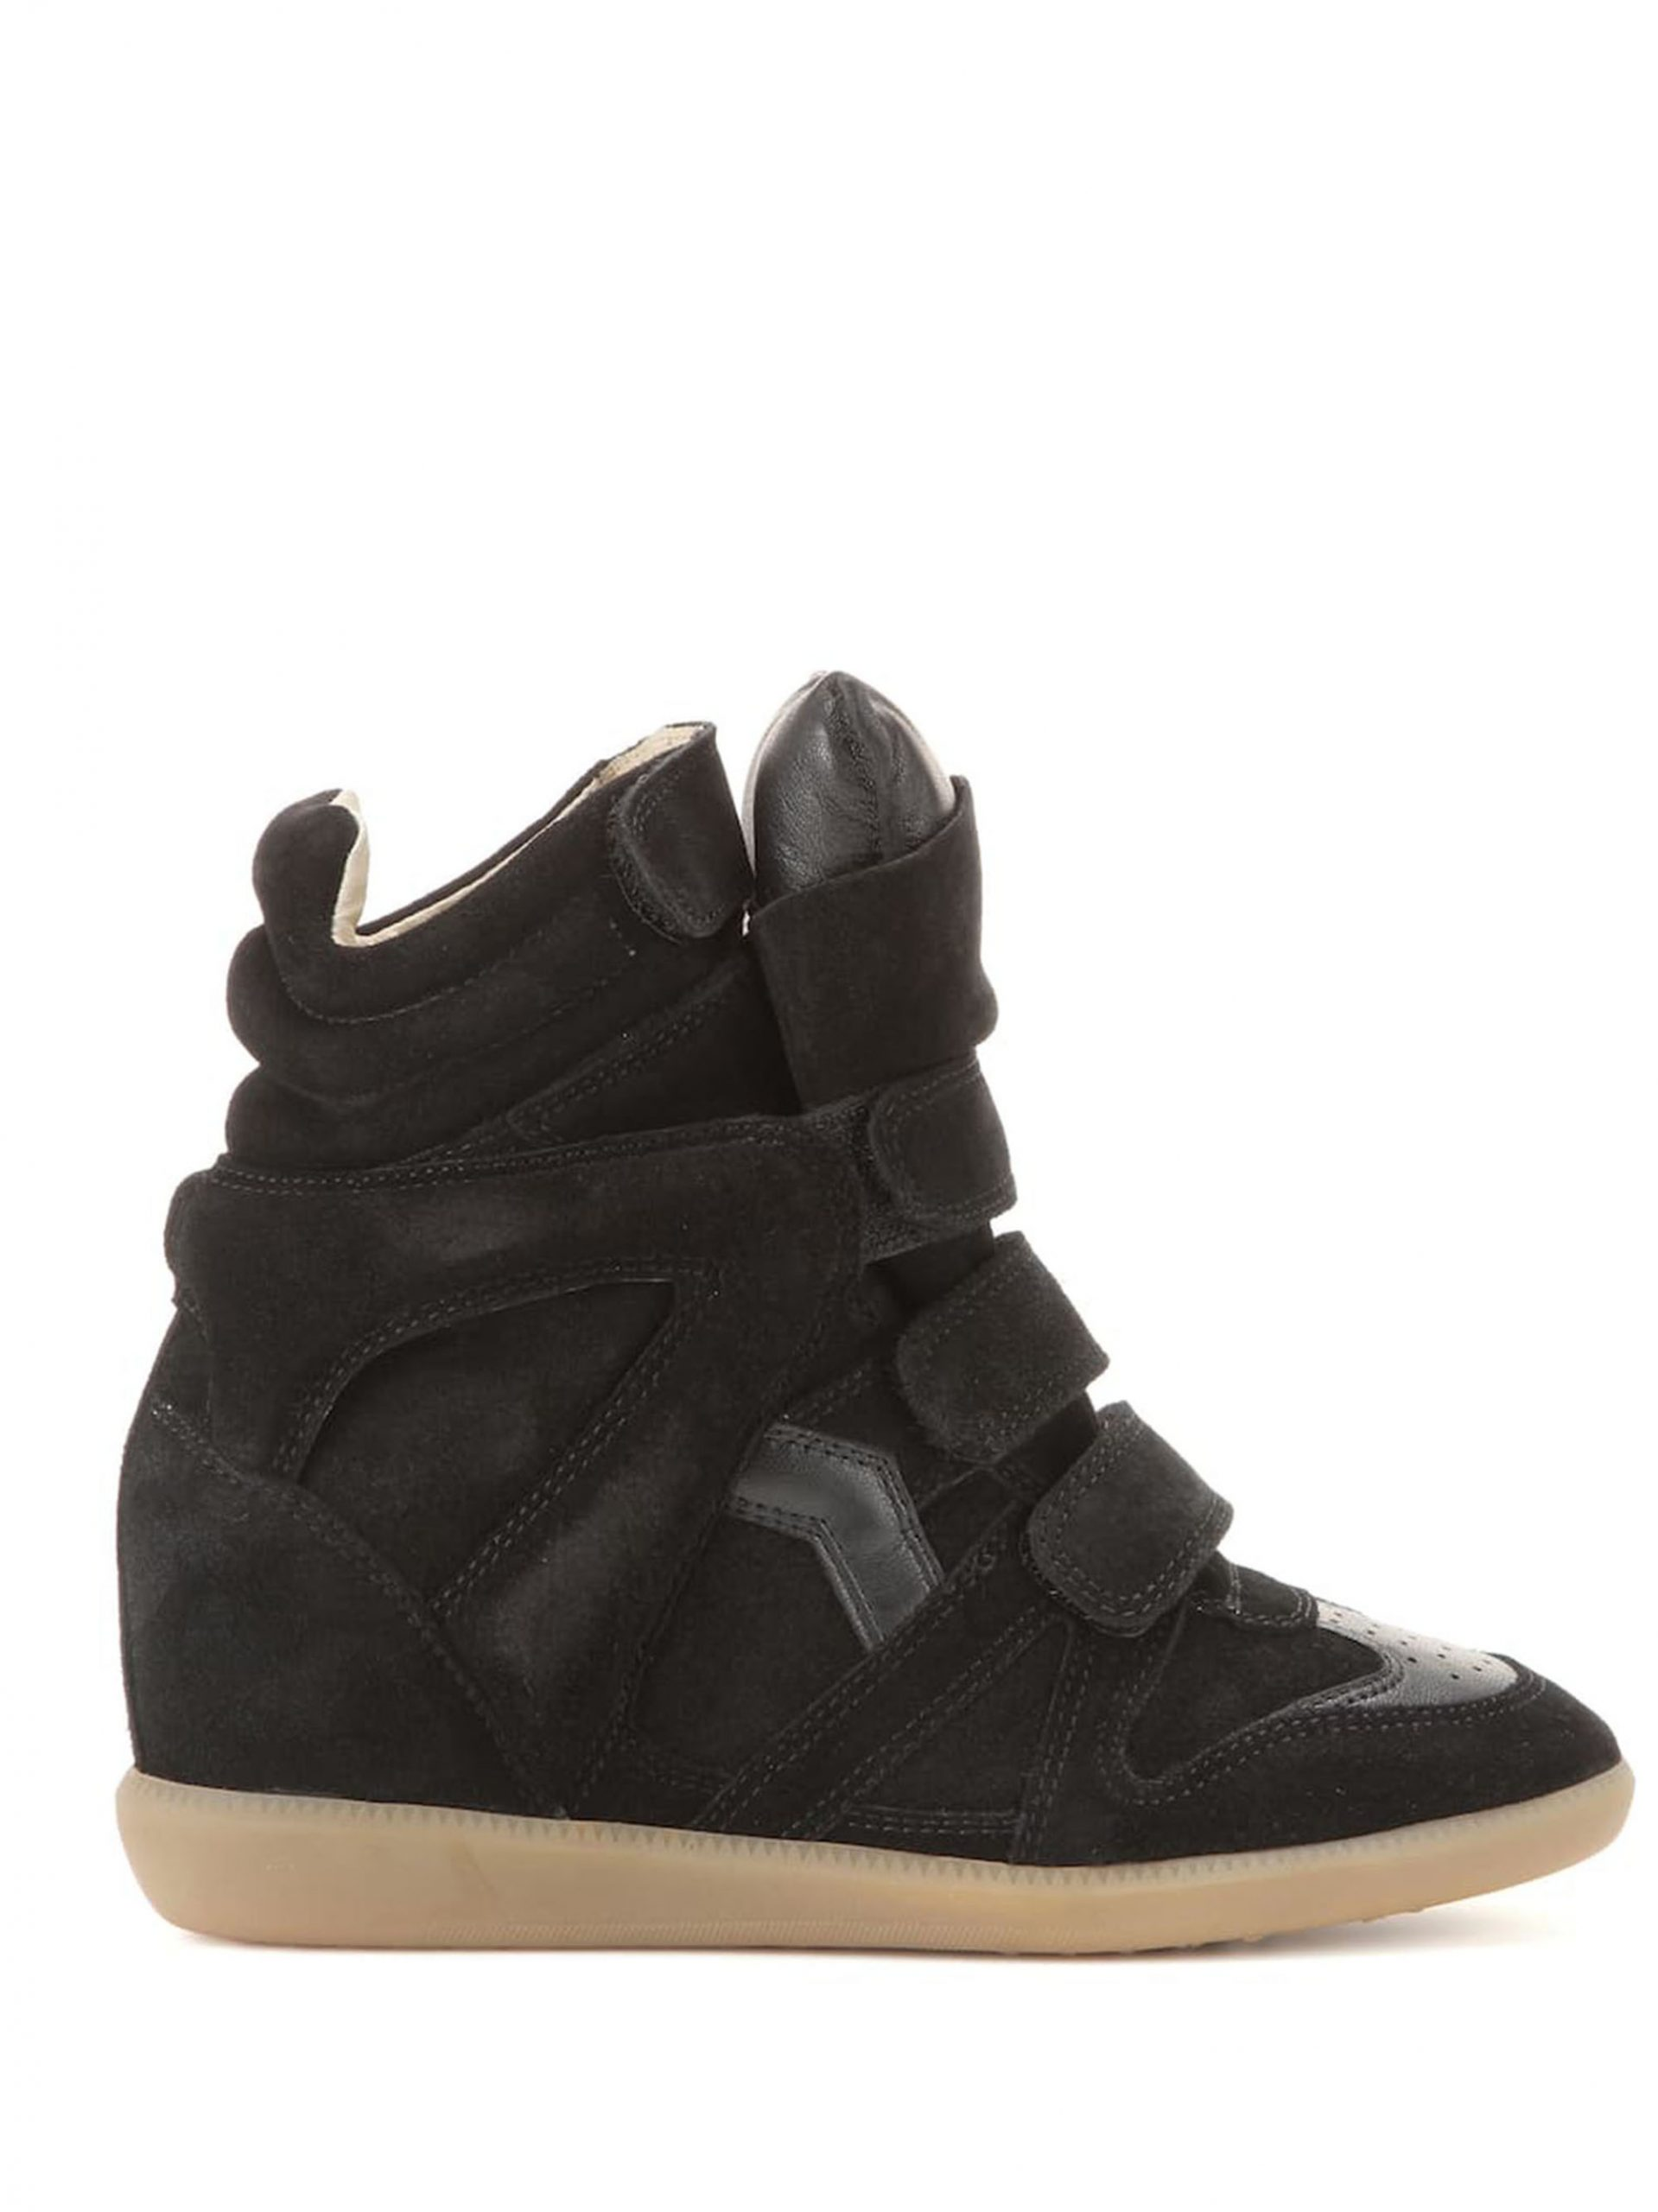 <p class='small-title'>ISABEL MARANT</p>Sneakers Leather and Suede